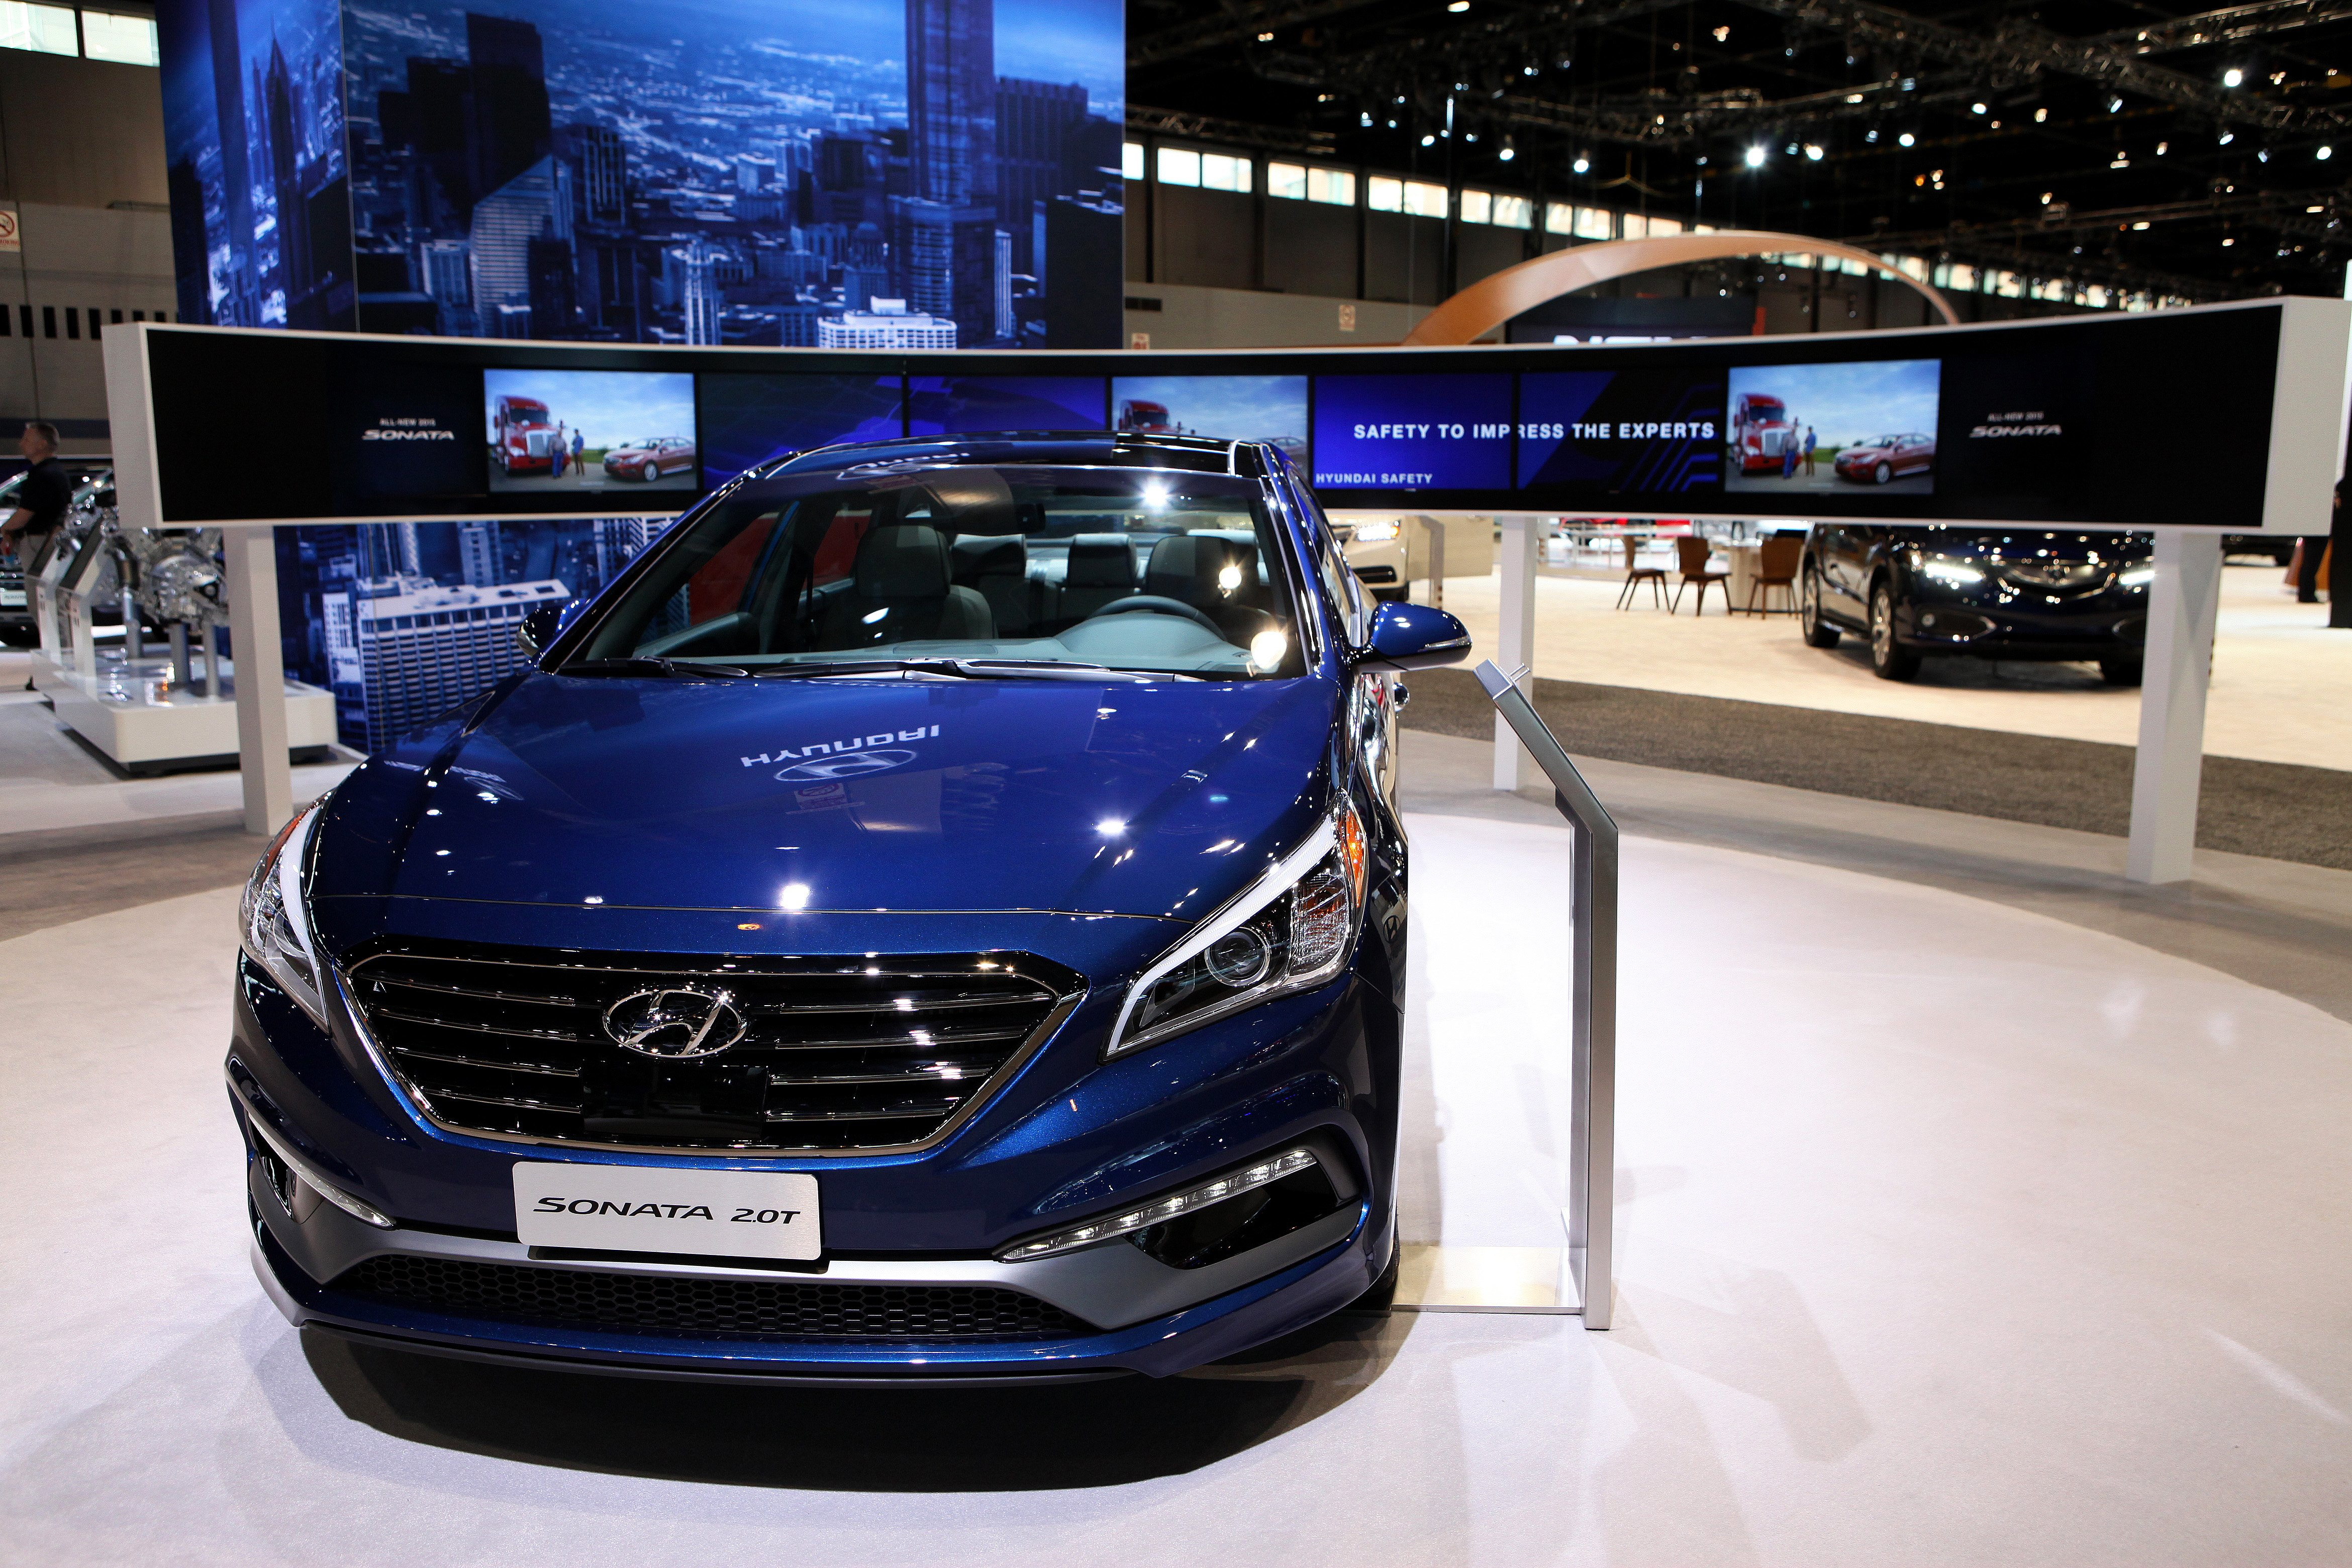 2015 Hyundai Sonata 2.0T at the 107th Annual Chicago Auto Show at McCormick Place in Chicago, Illinois on FEBRUARY 13, 2015.